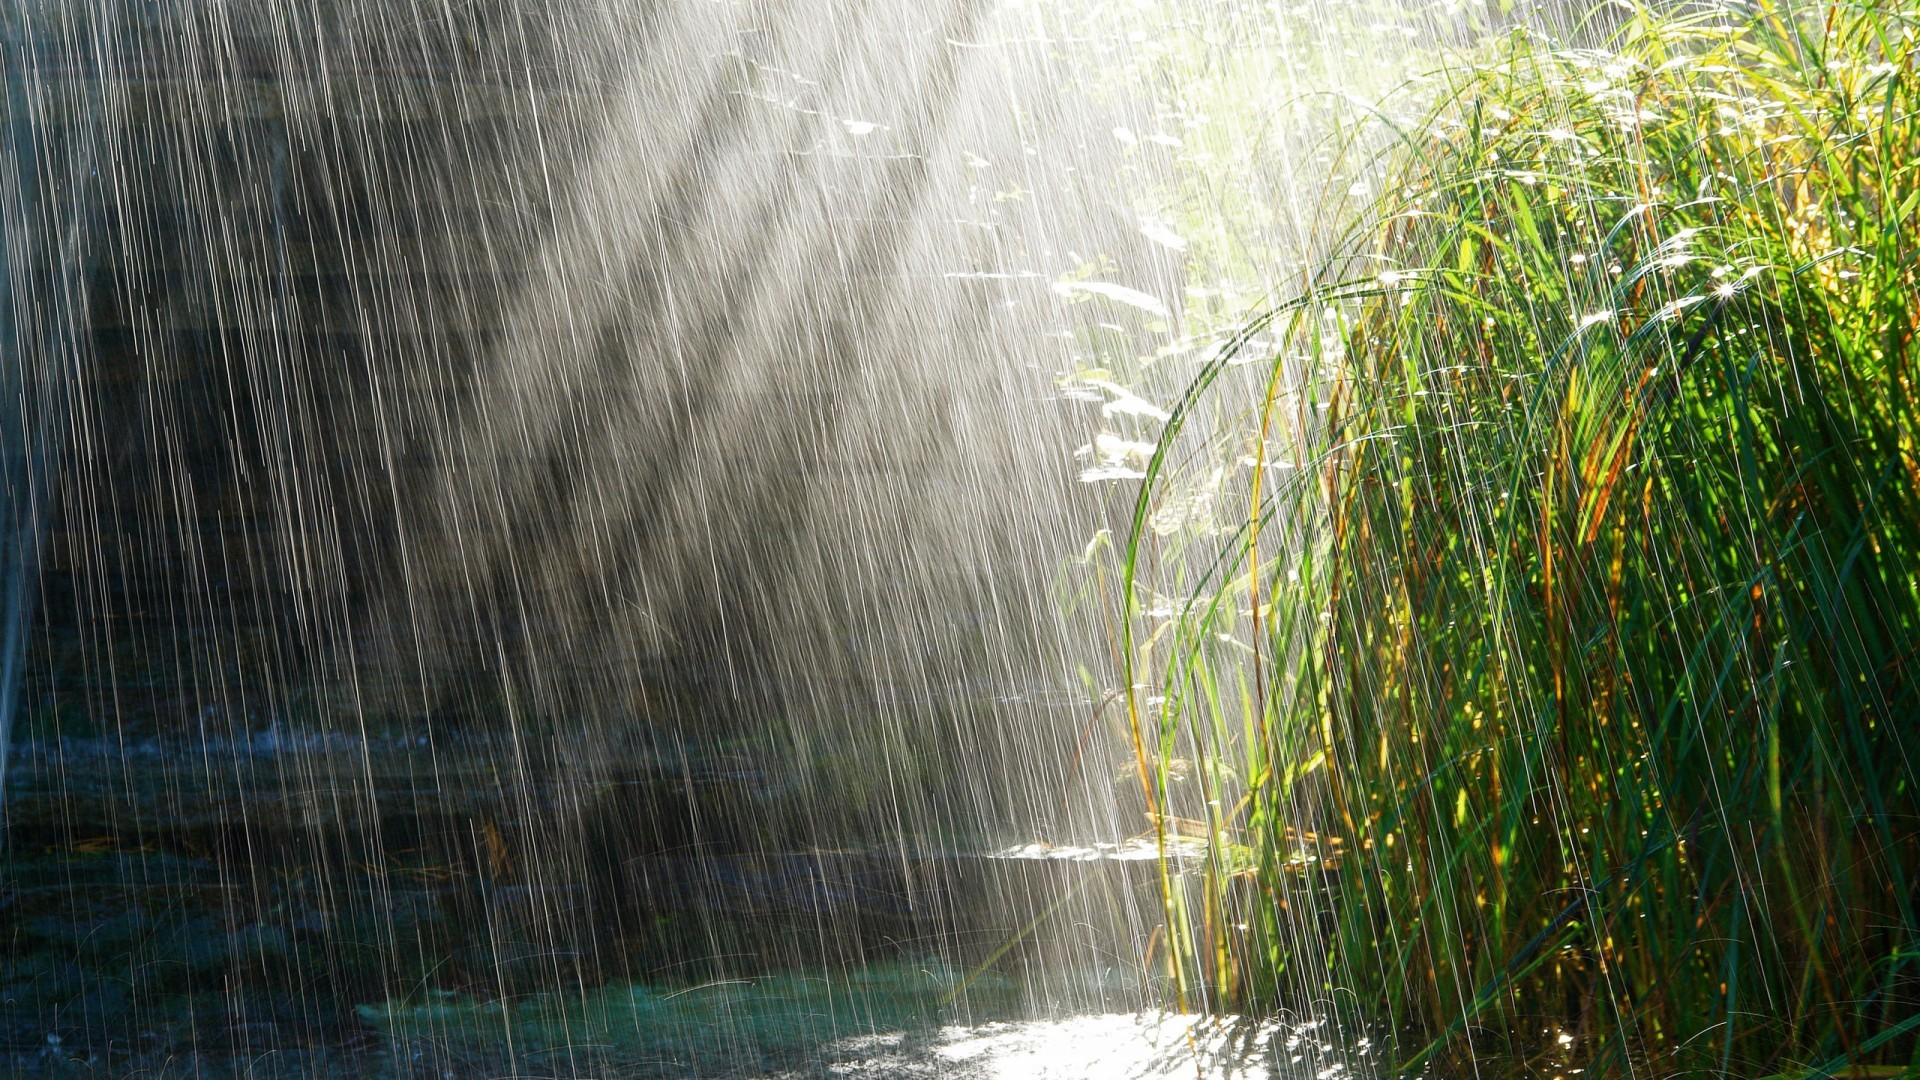 Heavy Rain in Sunny Weather 365.56 Kb